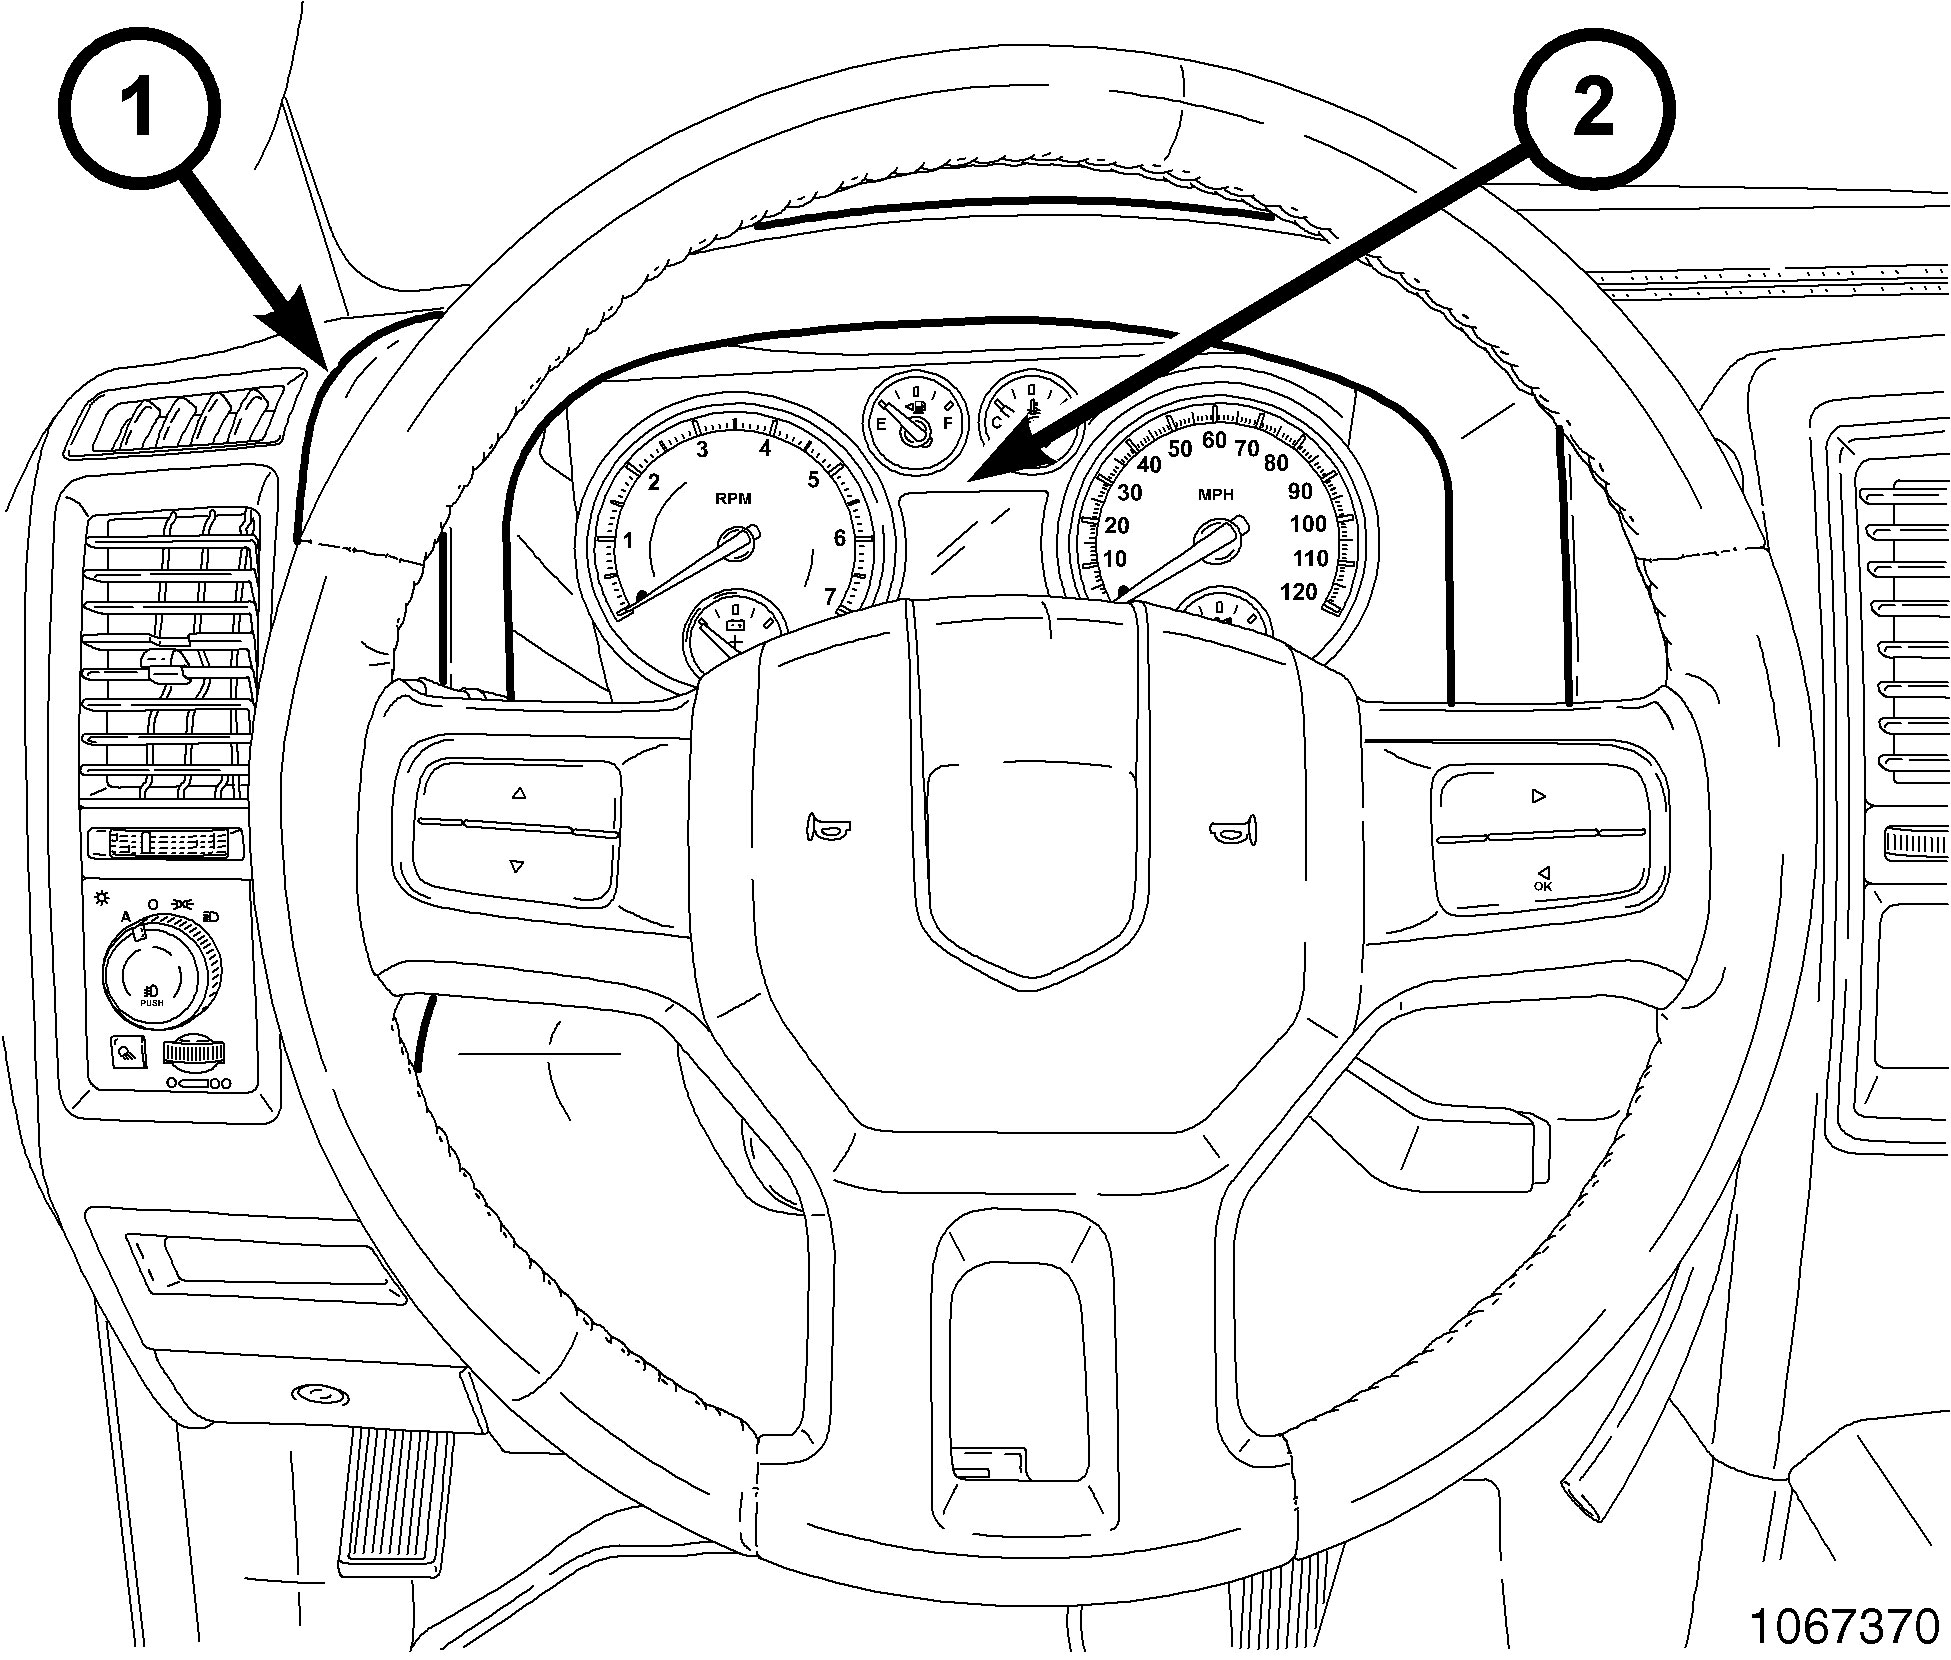 Steering wheel and instrument cluster